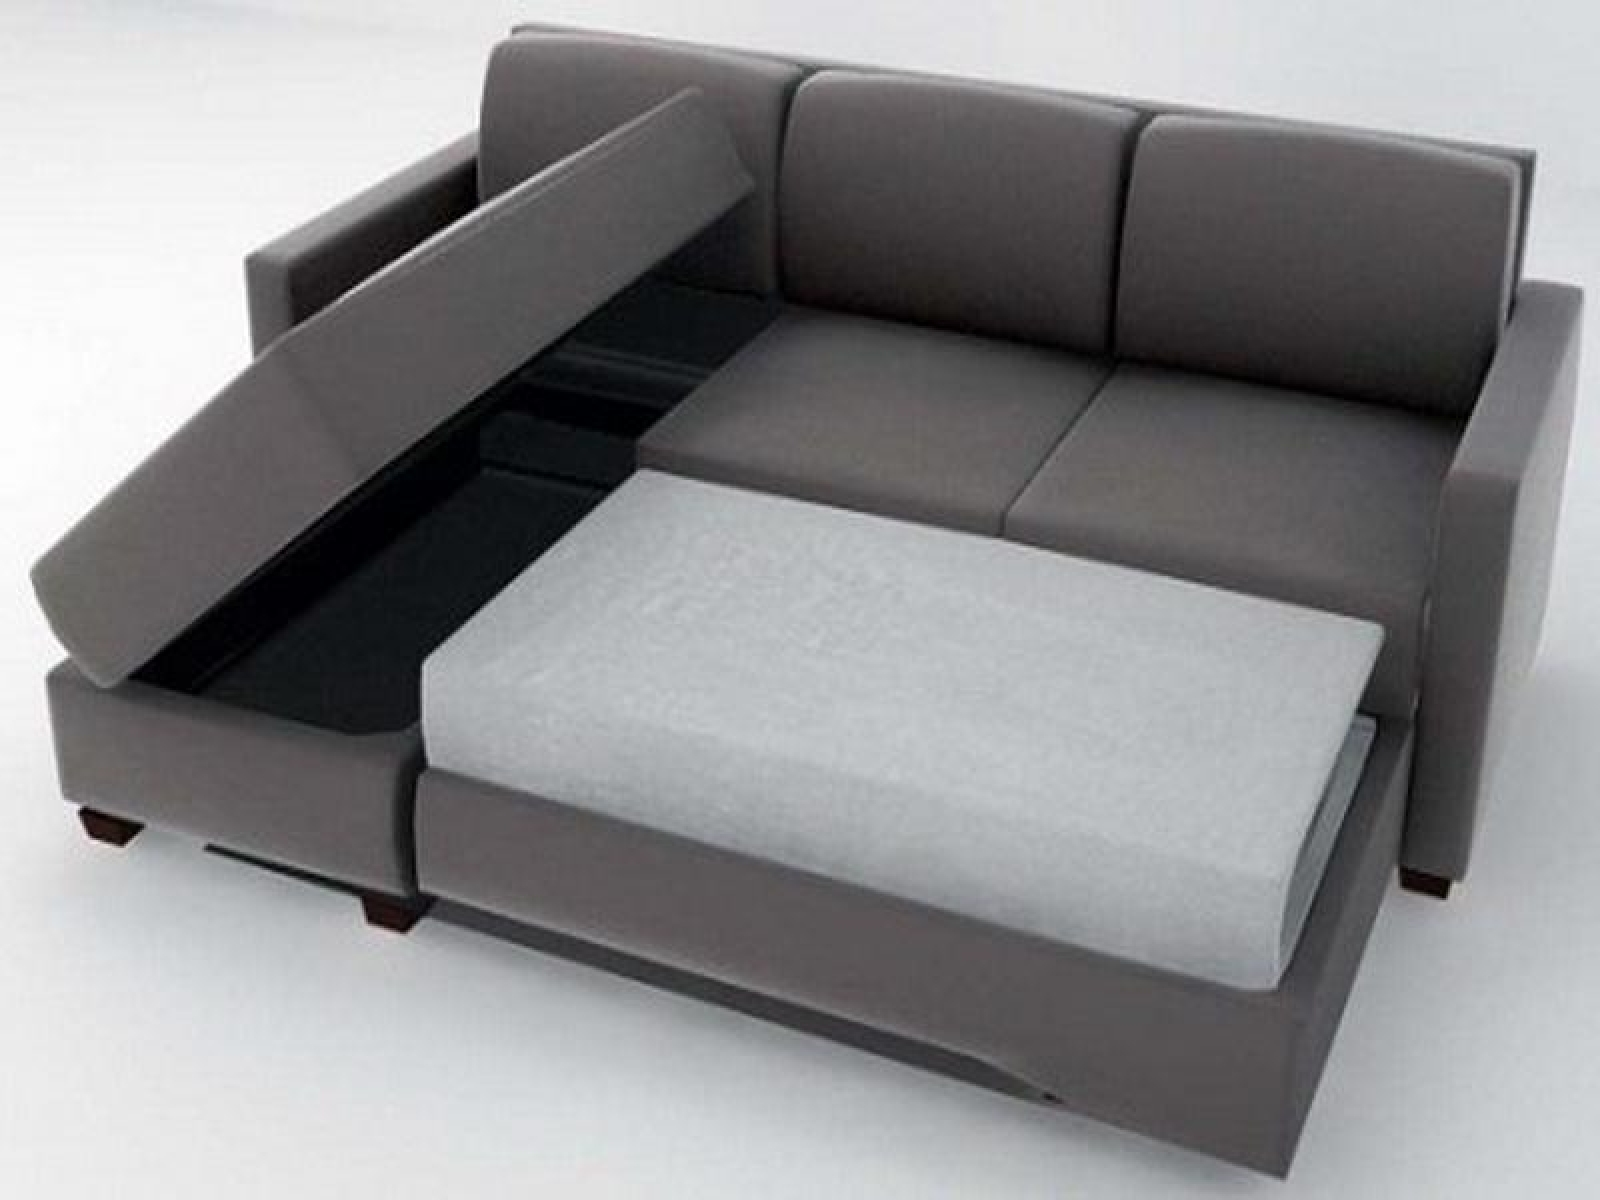 Unusual Sofas Intended For Trendy Furniture : Beautiful Unique Sofa 62 Modern Ideas With And (View 19 of 20)